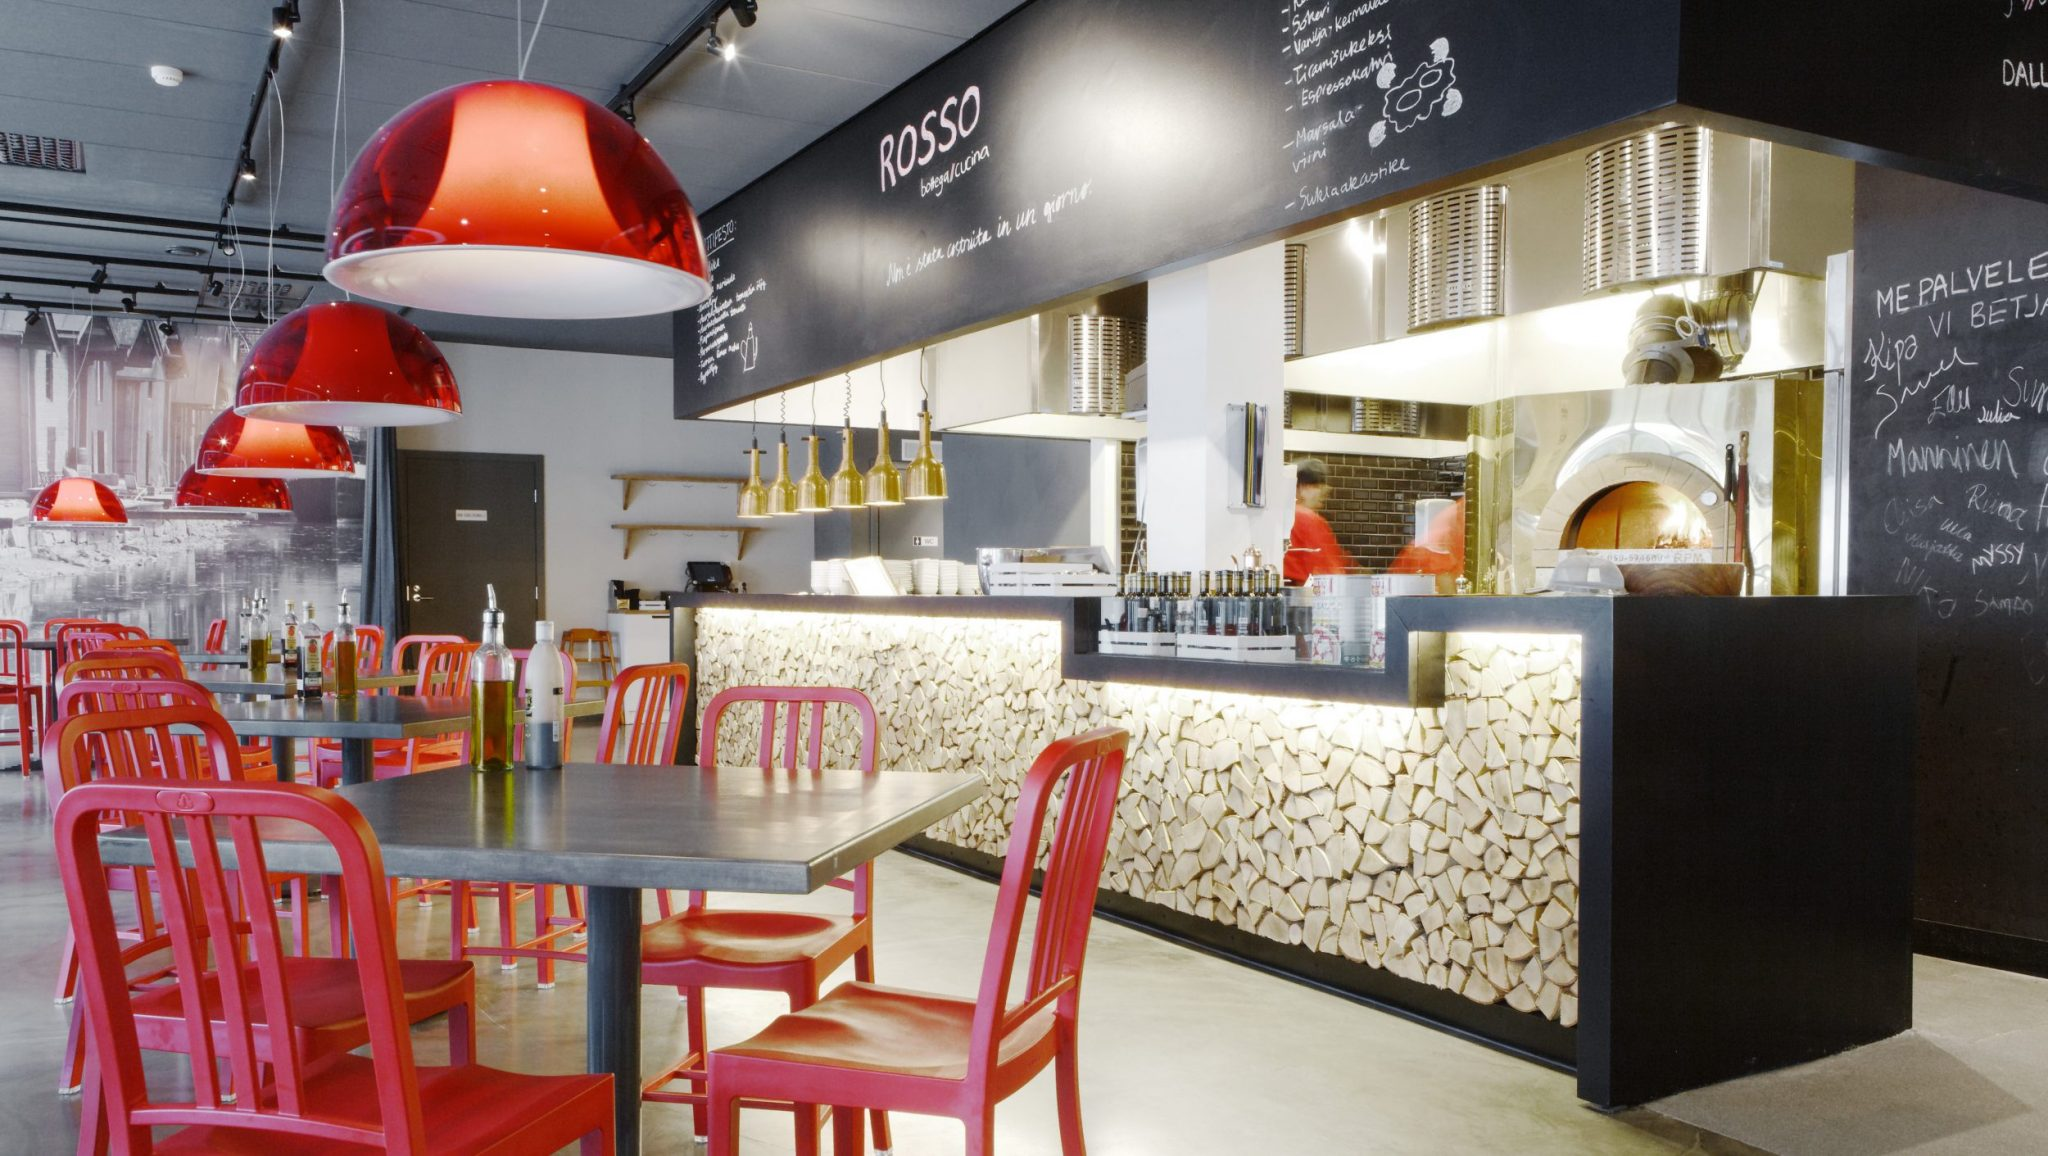 Rosso-Restaurants-Finland-GI-Project-5